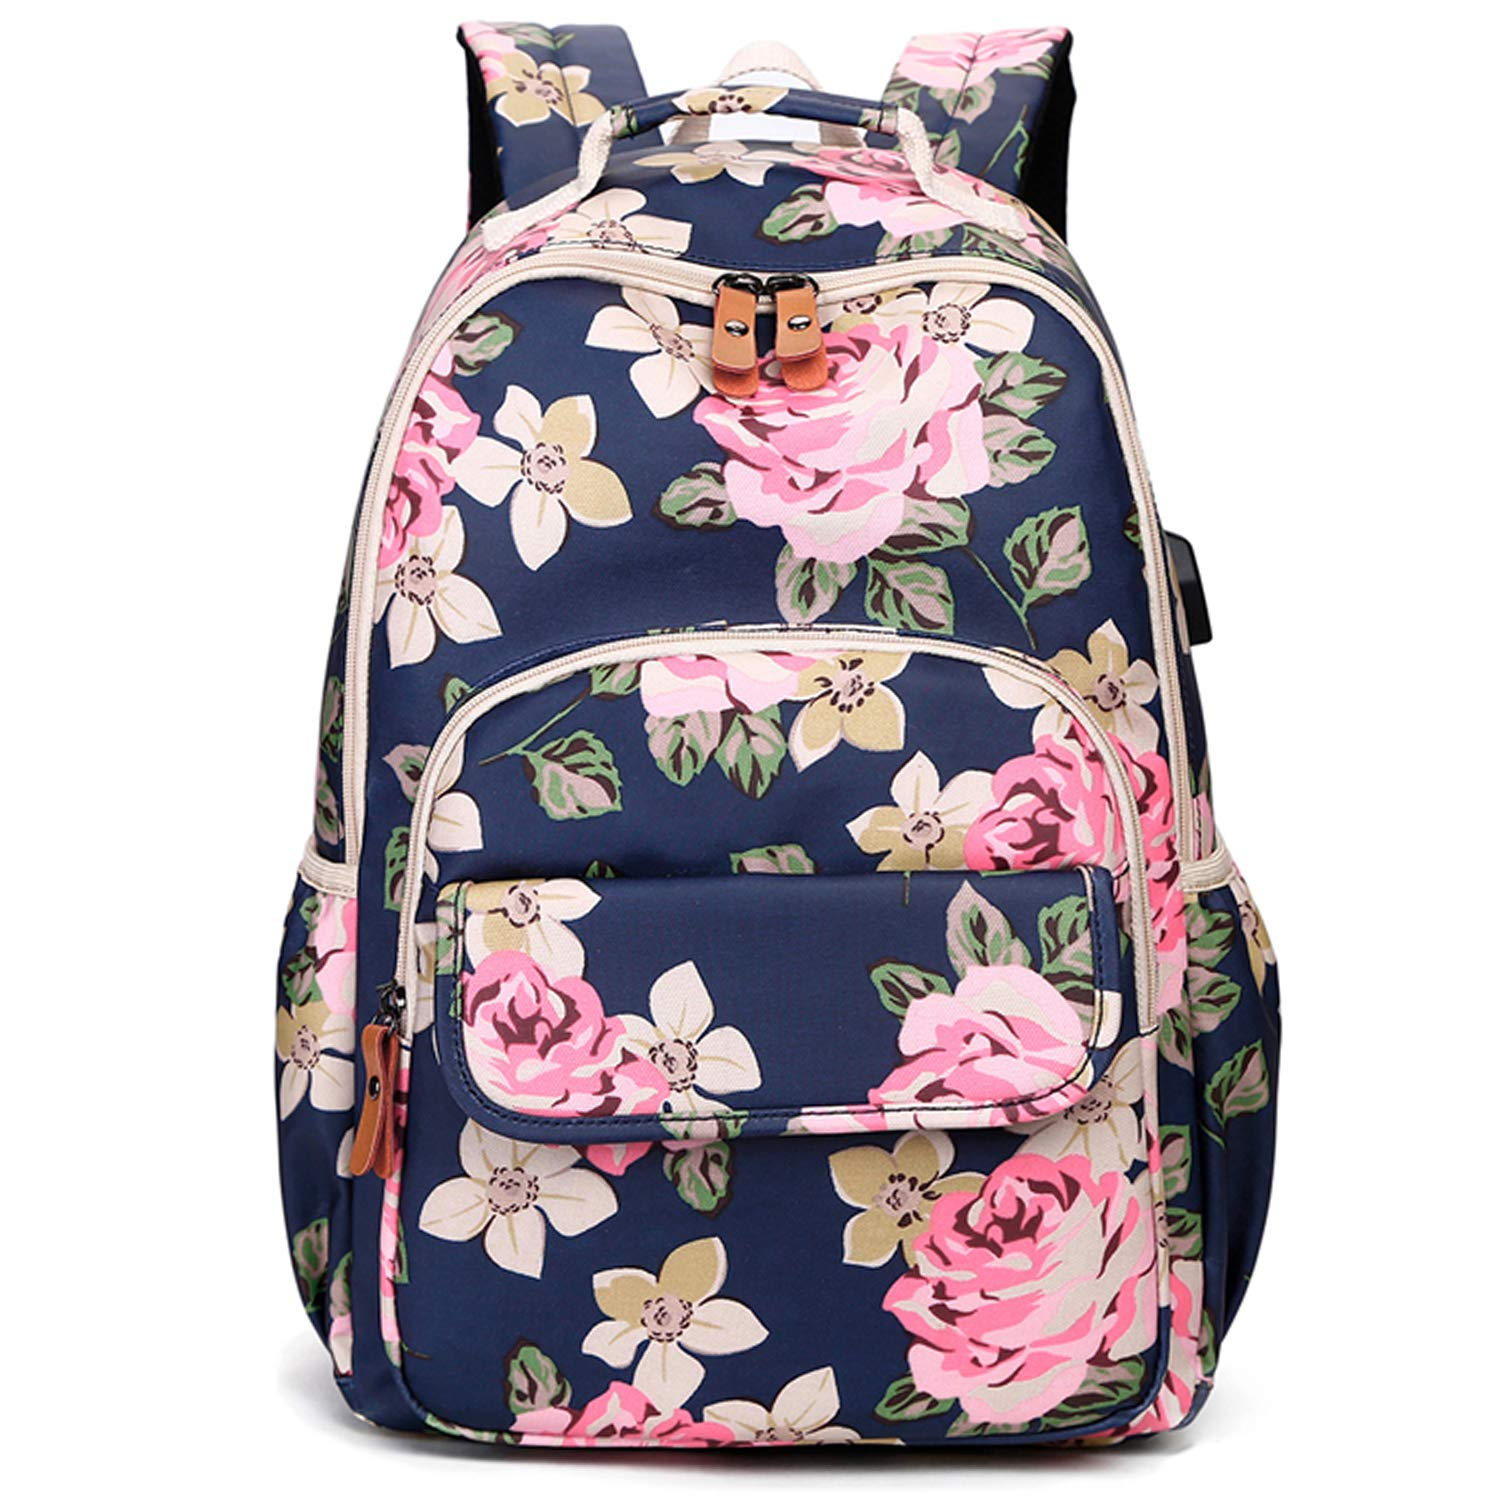 853f68be6cee Amazon.com | CAMTOP Backpack for School Girls Bookbag Laptop ...